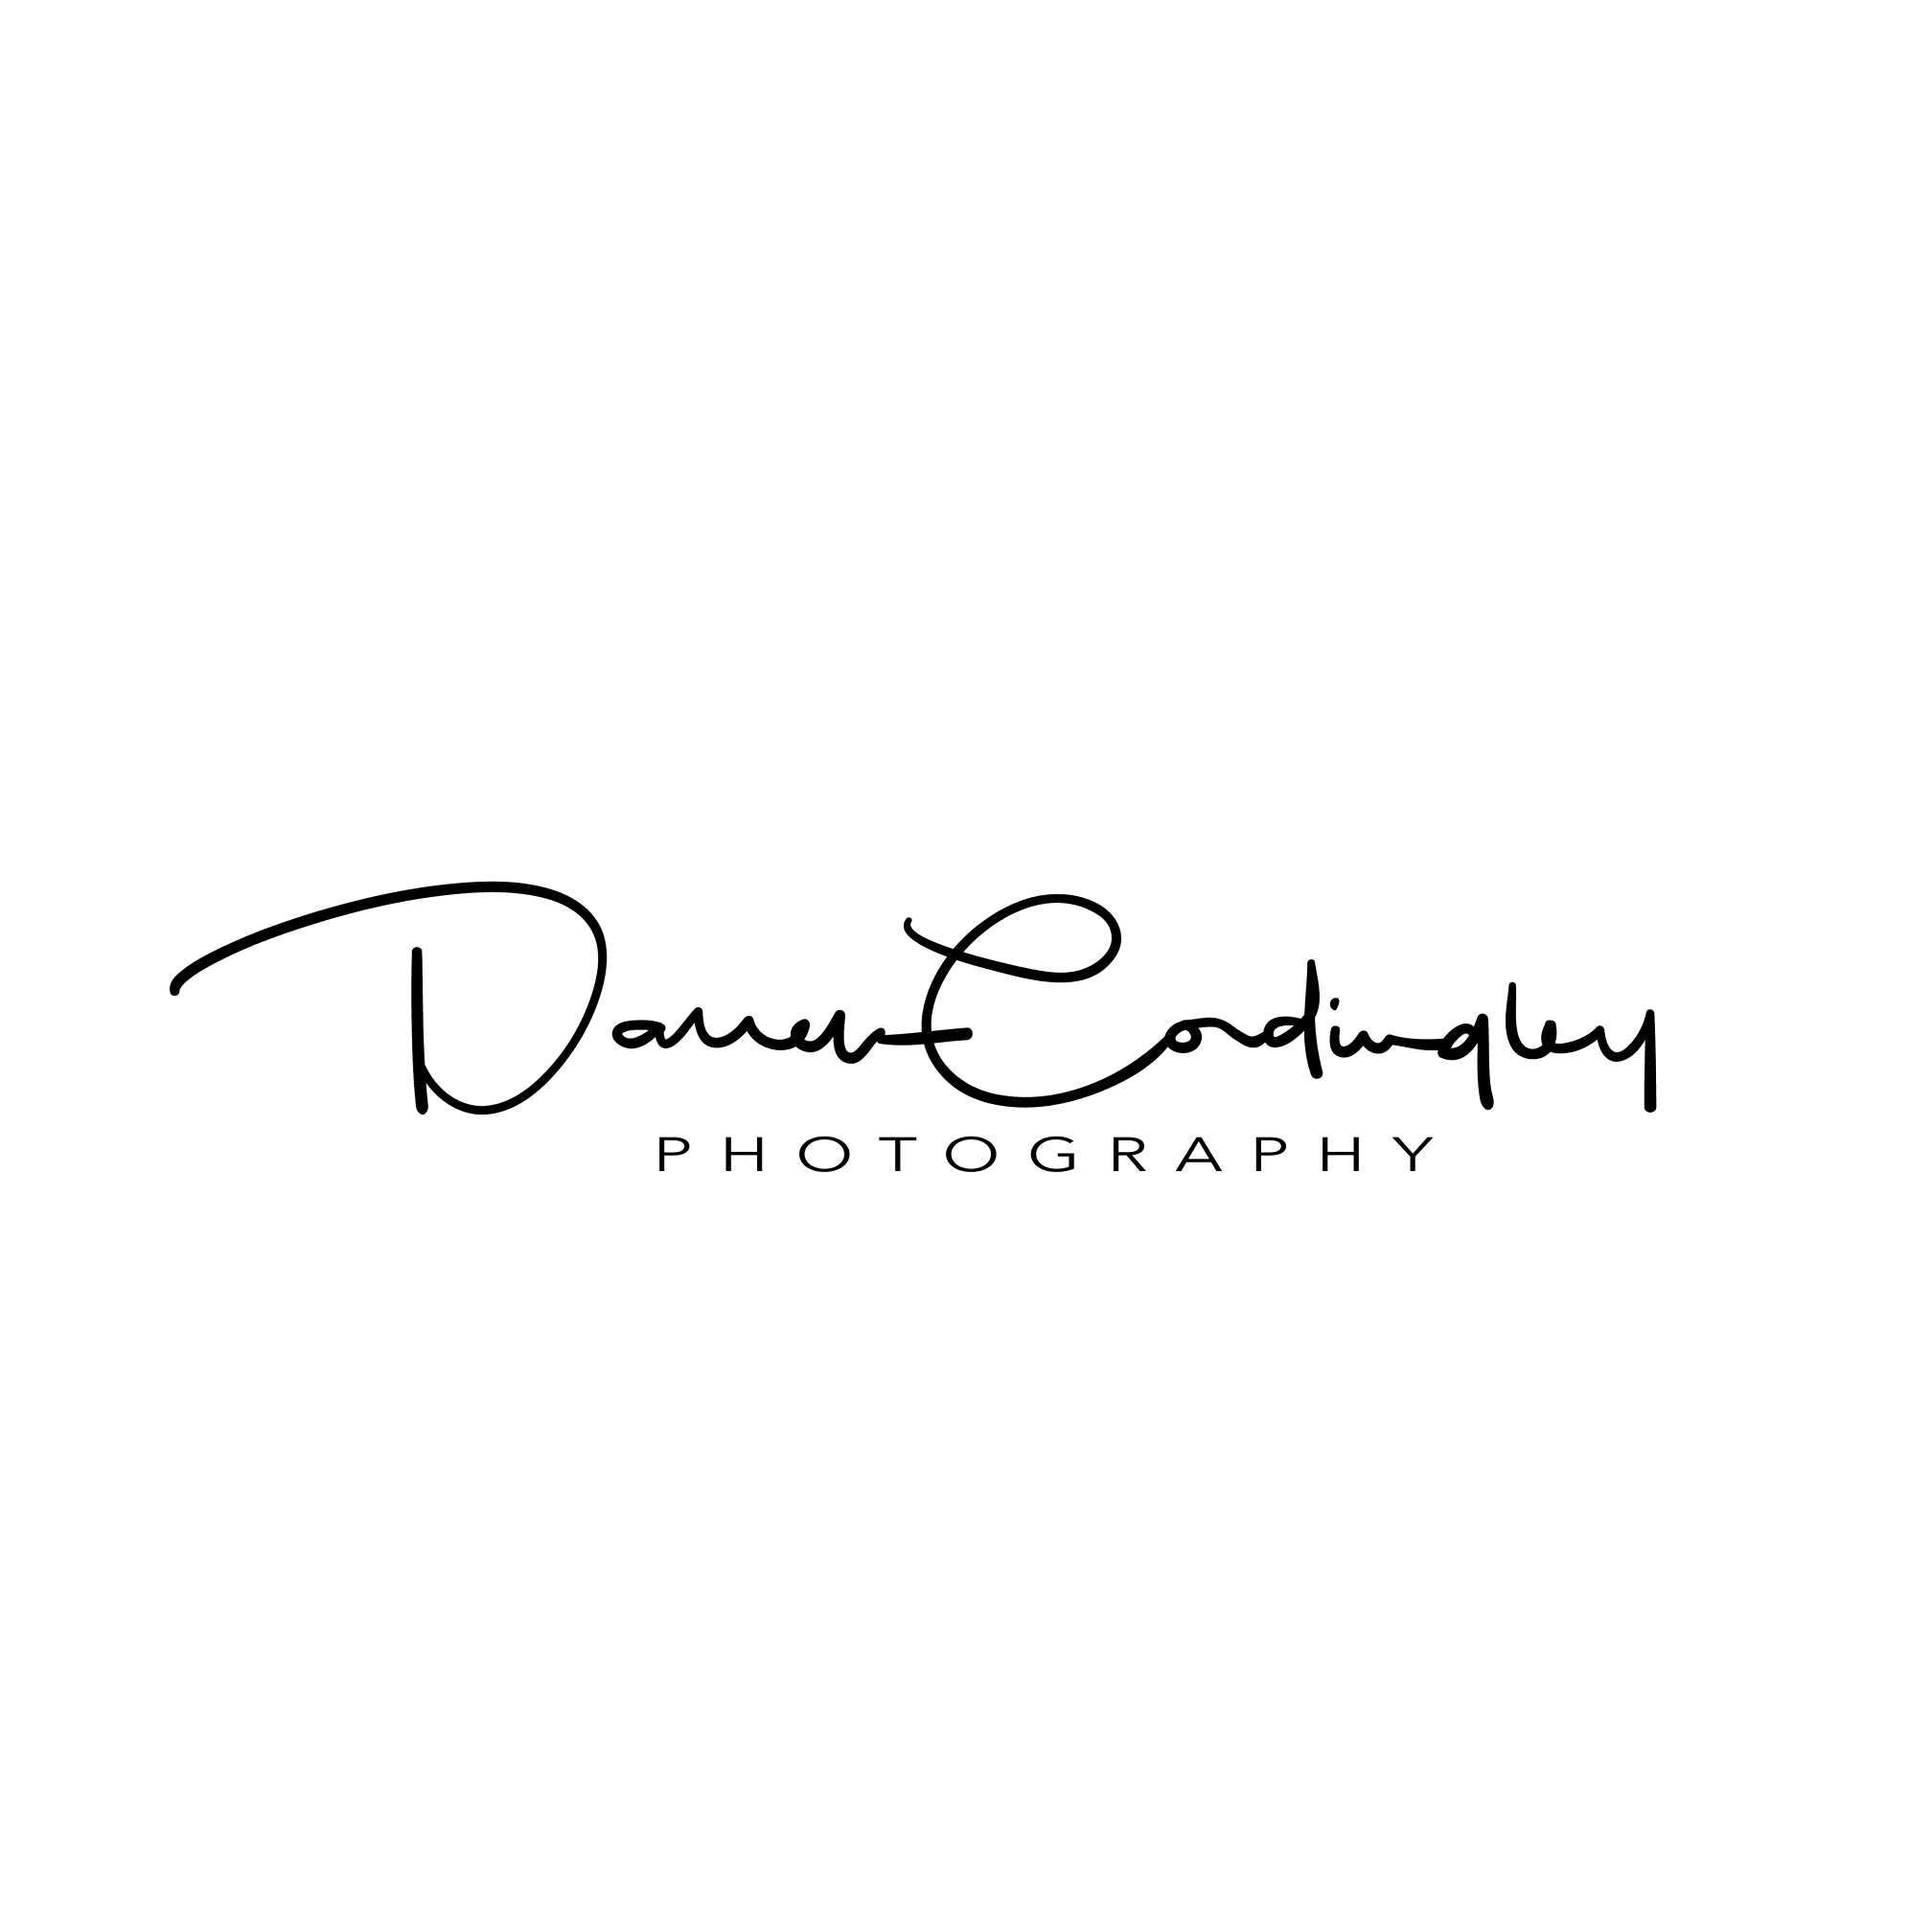 Darren Cordingley Photography - Frome, Somerset BA11 5DD - 07709 421638 | ShowMeLocal.com